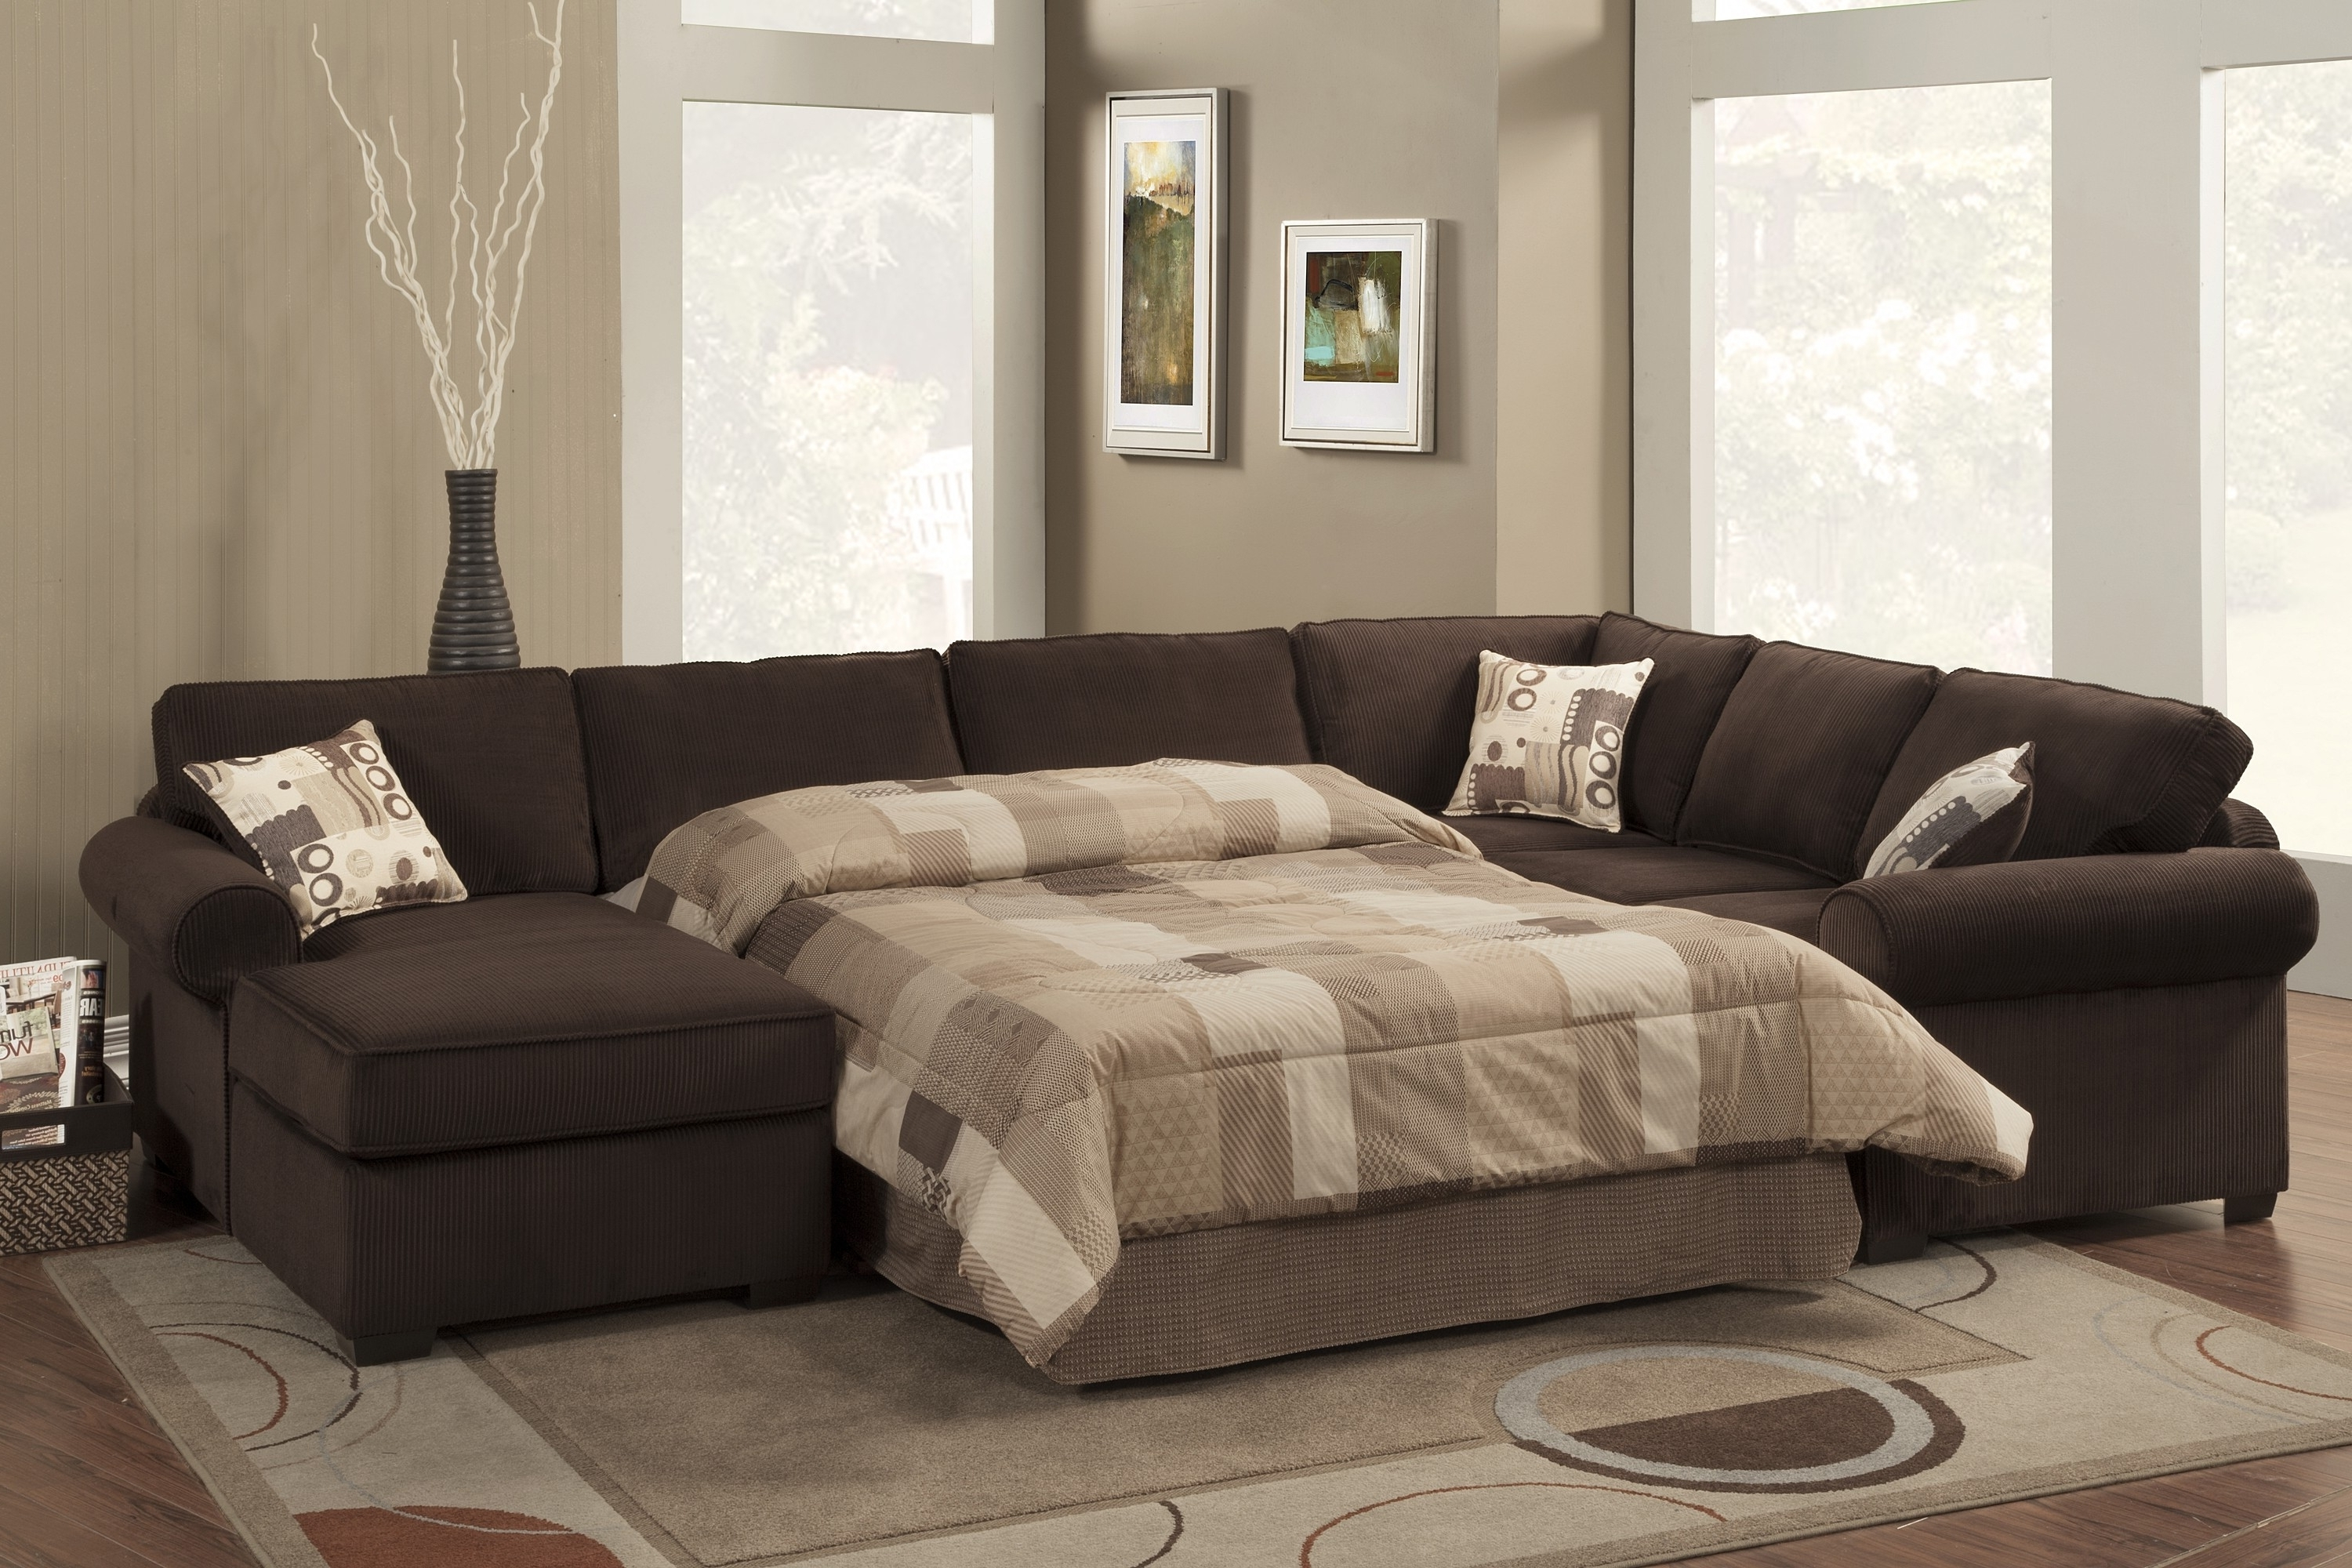 Sectional Sleeper Sofa Nj • Sectional Sofa Within Well Known Nj Sectional Sofas (View 16 of 20)